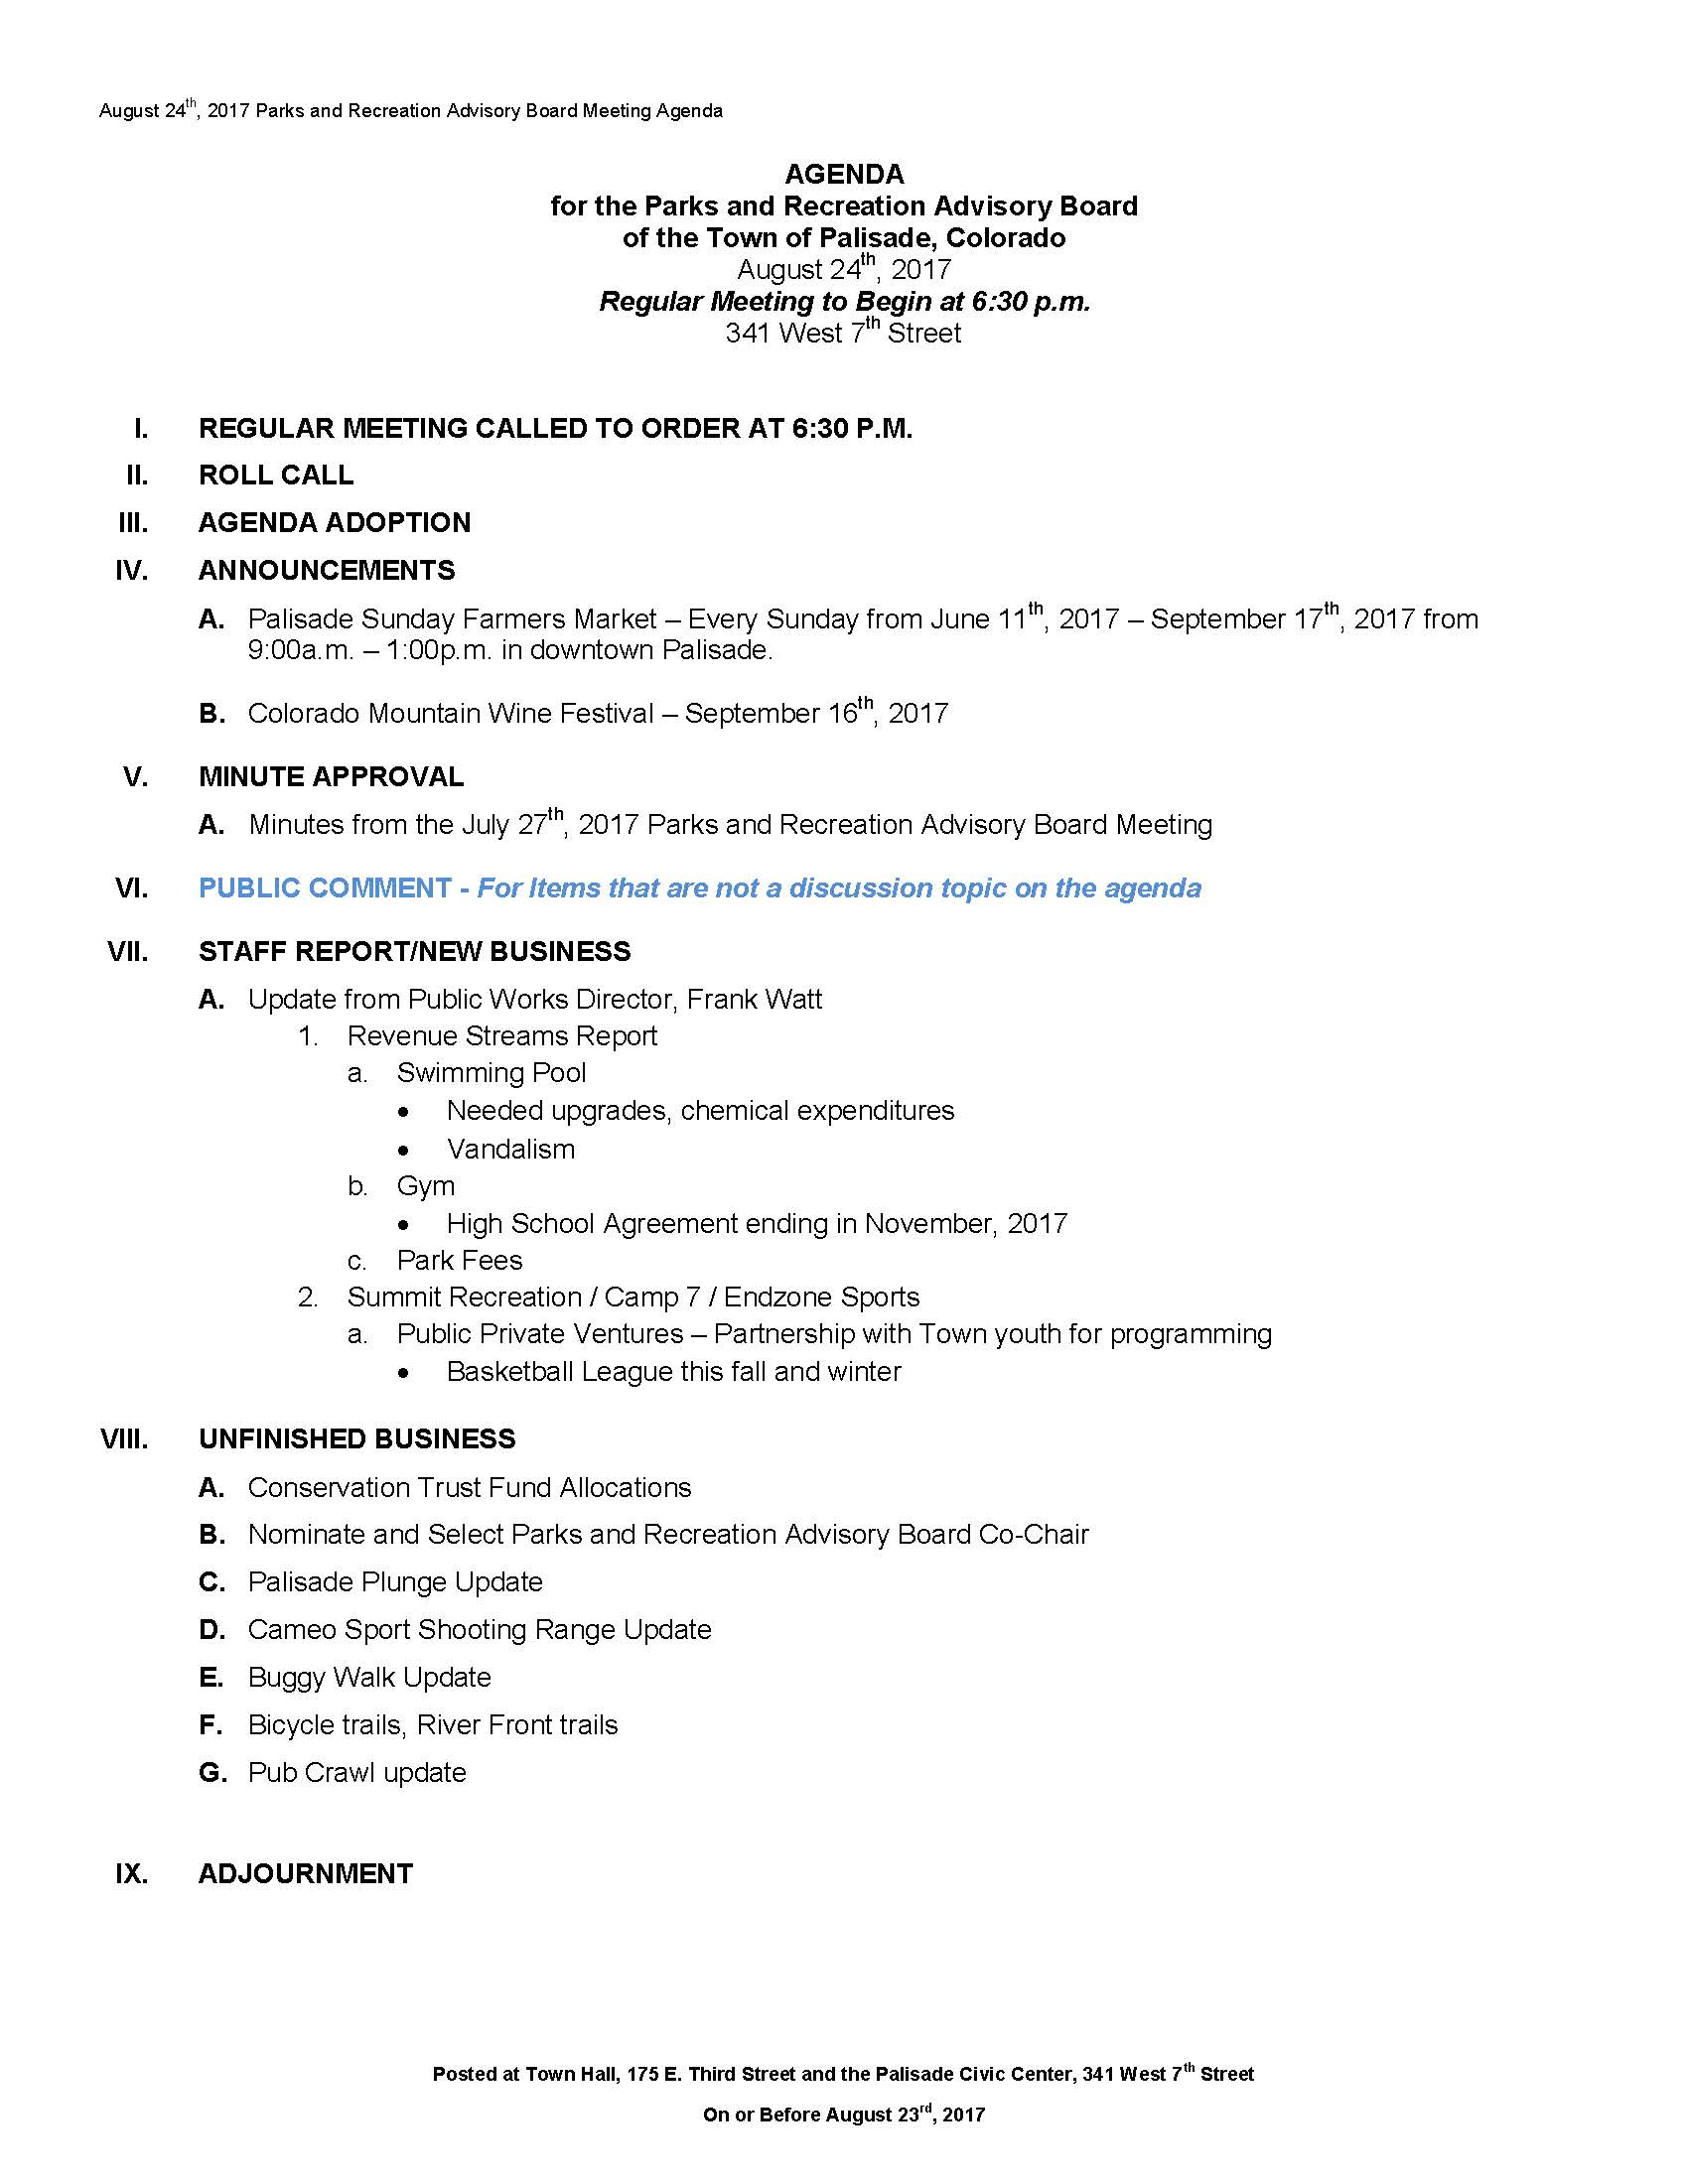 August 24th 2017 PRAC Meeting Agenda Page 1